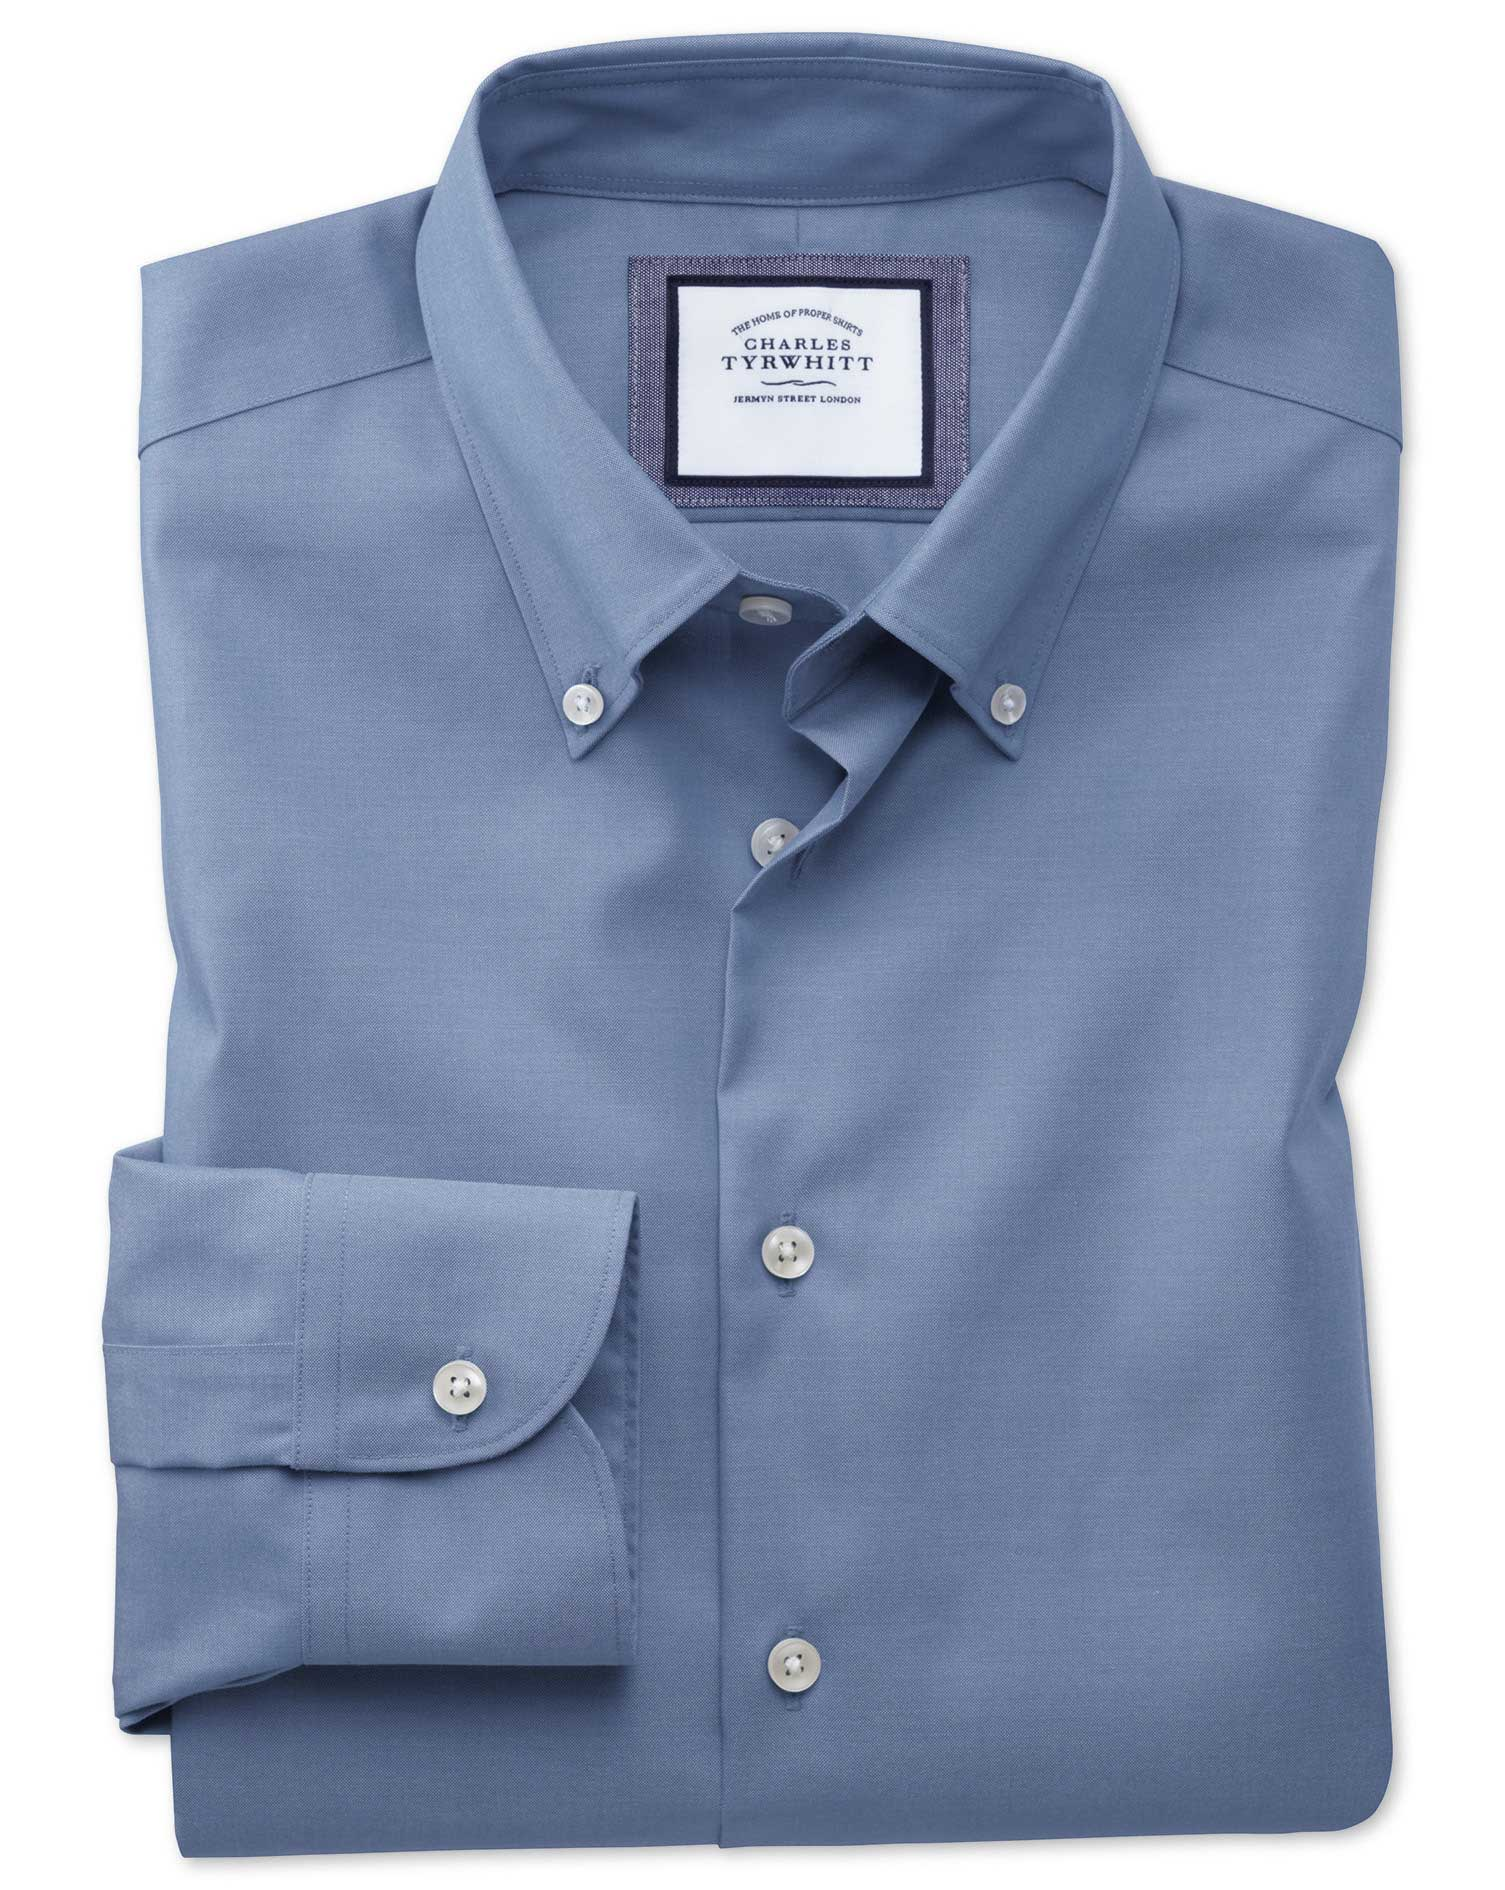 Extra Slim Fit Button-Down Business Casual Non-Iron Mid Blue Cotton Formal Shirt Single Cuff Size 16